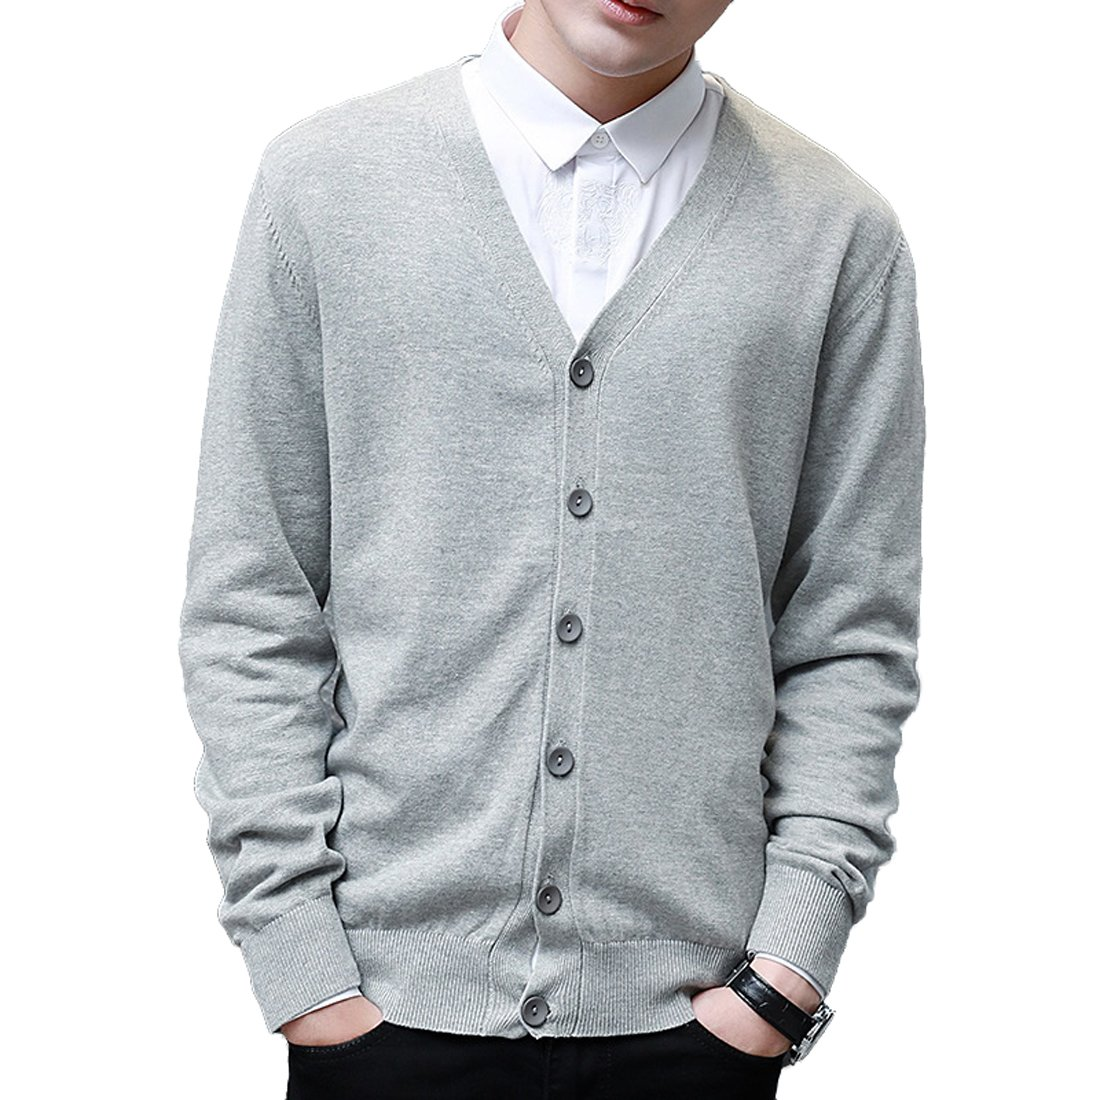 HDH Knit Cardigan,Mens Lightweight Cardigans Slim Fit Knitwear V-Neck Front Button Versatile Kintted Cardigan Sweater